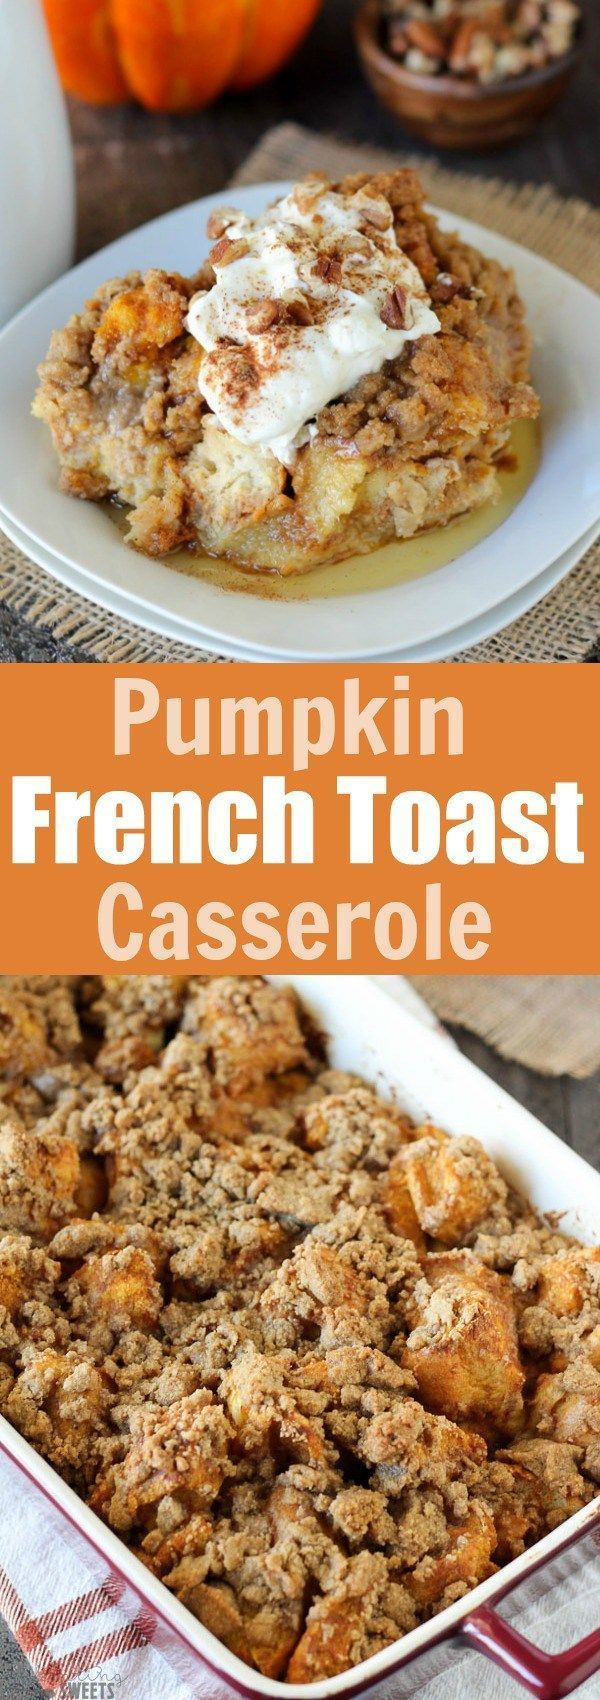 Baked Pumpkin French Toast Casserole - An easy make-ahead dish for ...